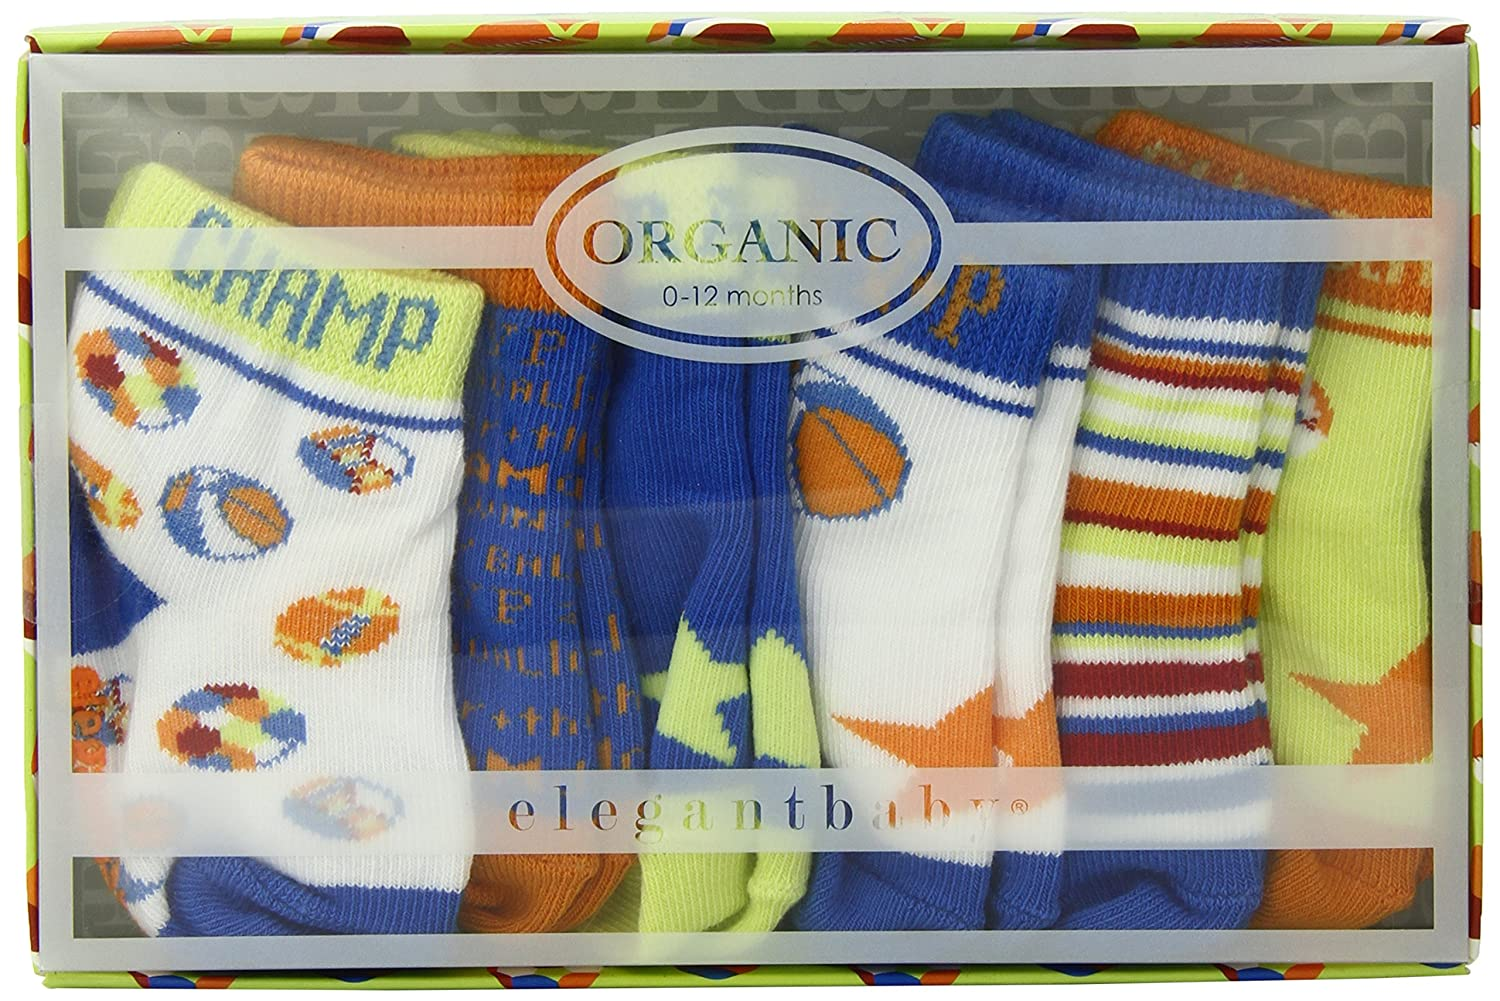 Amazon.com: Elegant Baby Play Ball Boys Socks, All Star, 6 Pair (Discontinued by Manufacturer): Baby